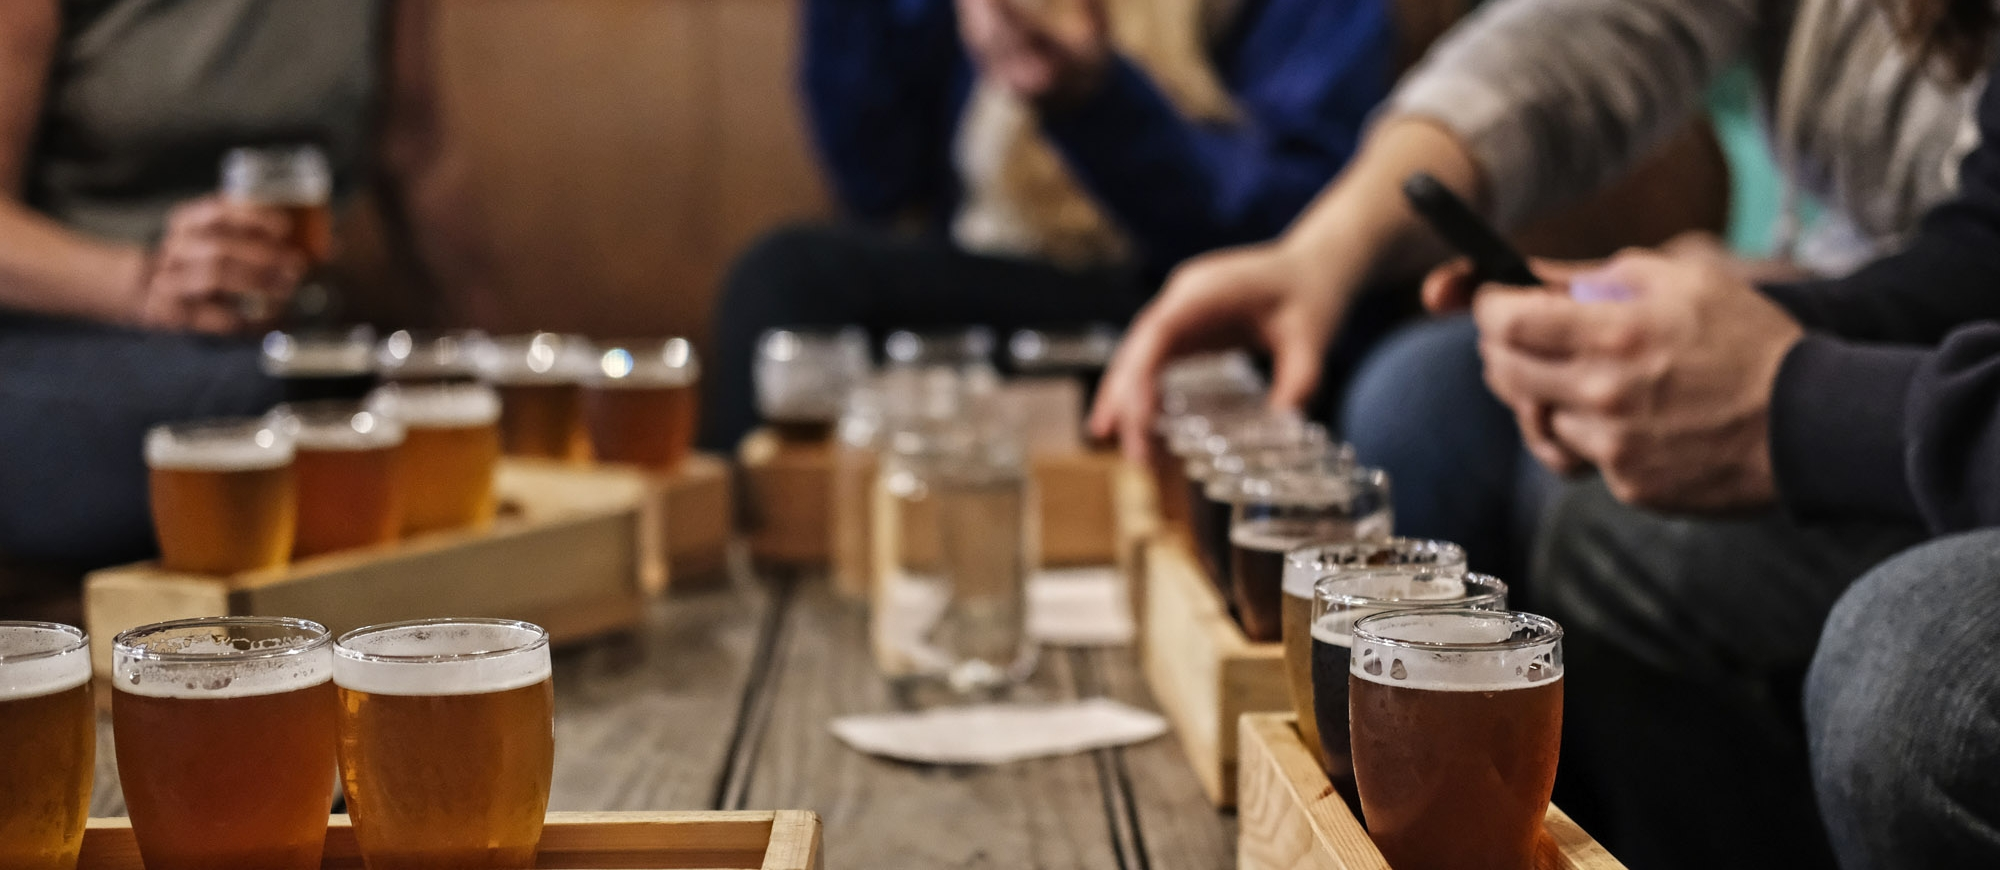 A number of beer flights on a table at Backroads Brewing Co in Nelson, BC.